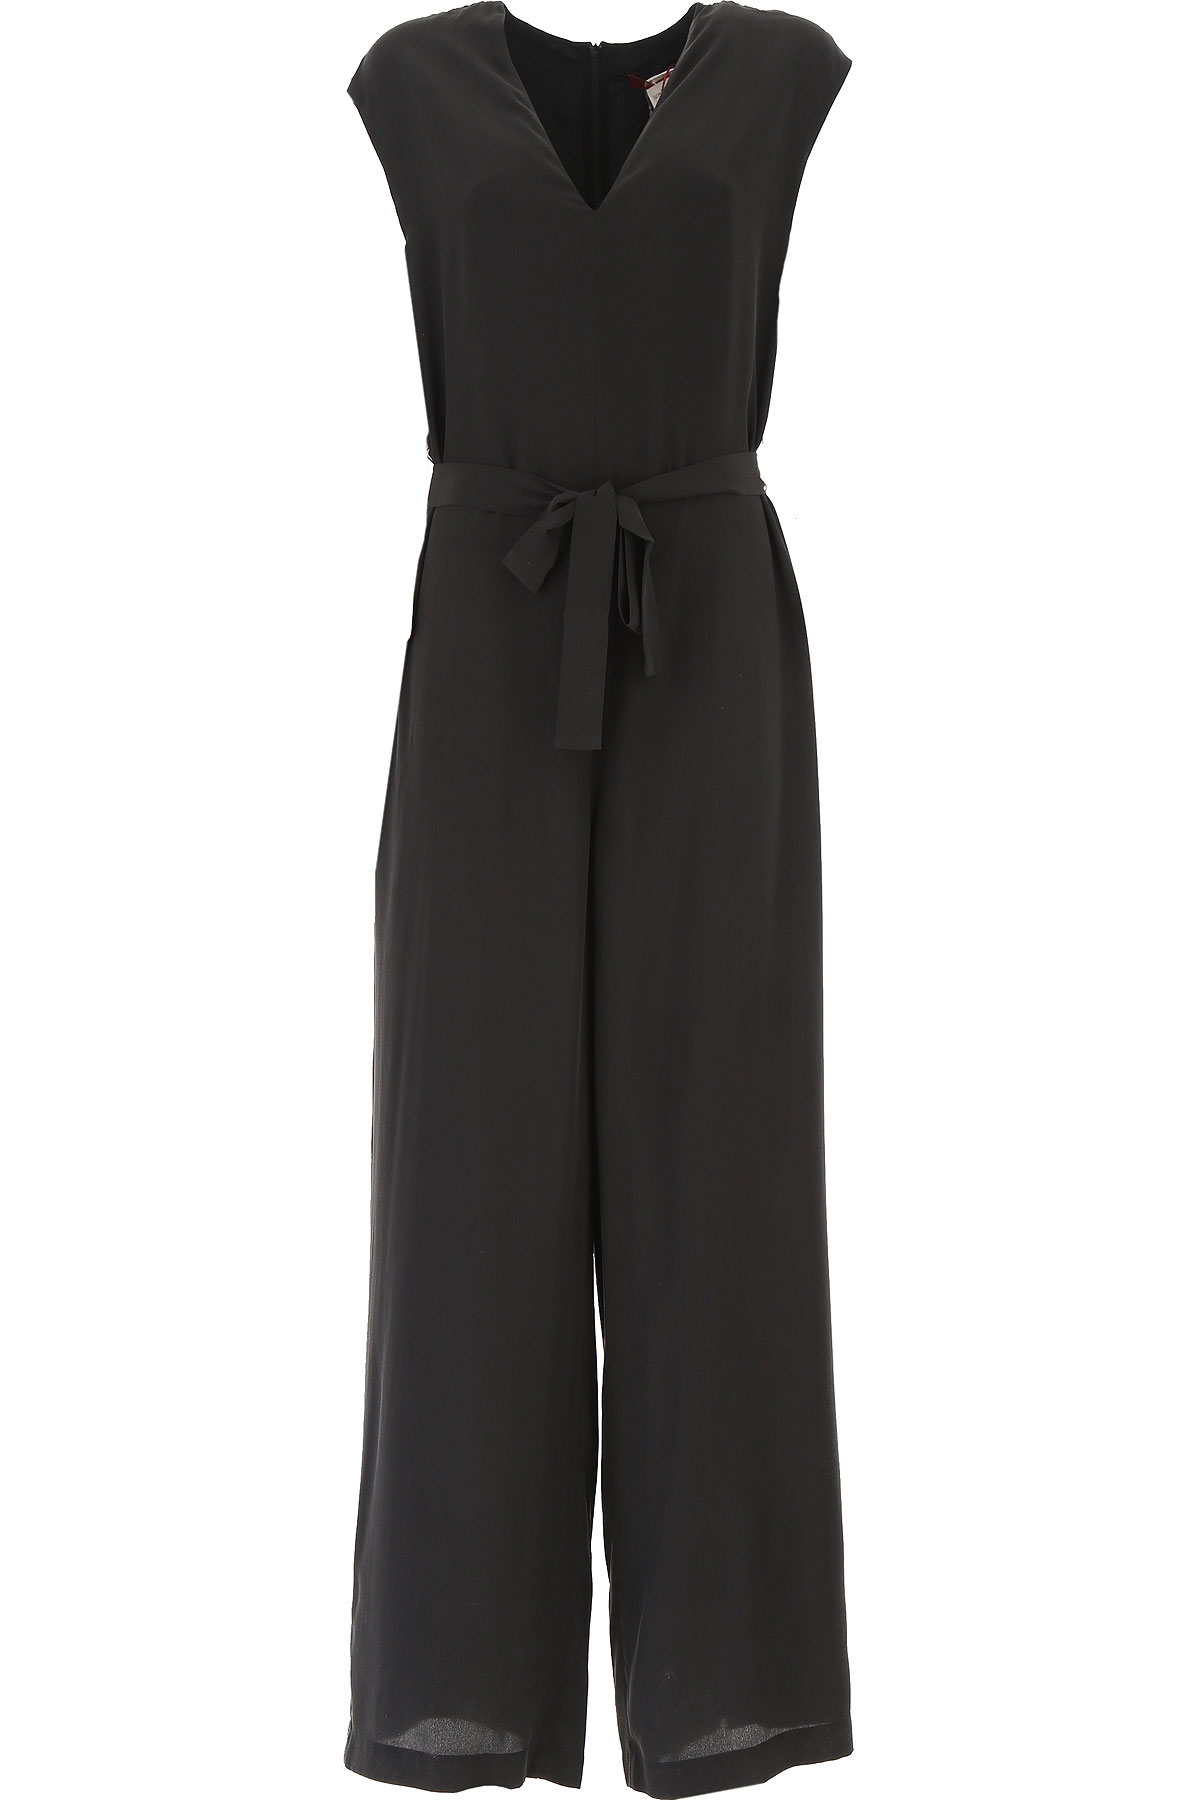 Max Mara Dress for Women, Evening Cocktail Party On Sale, Black, Silk, 2019, 6 8